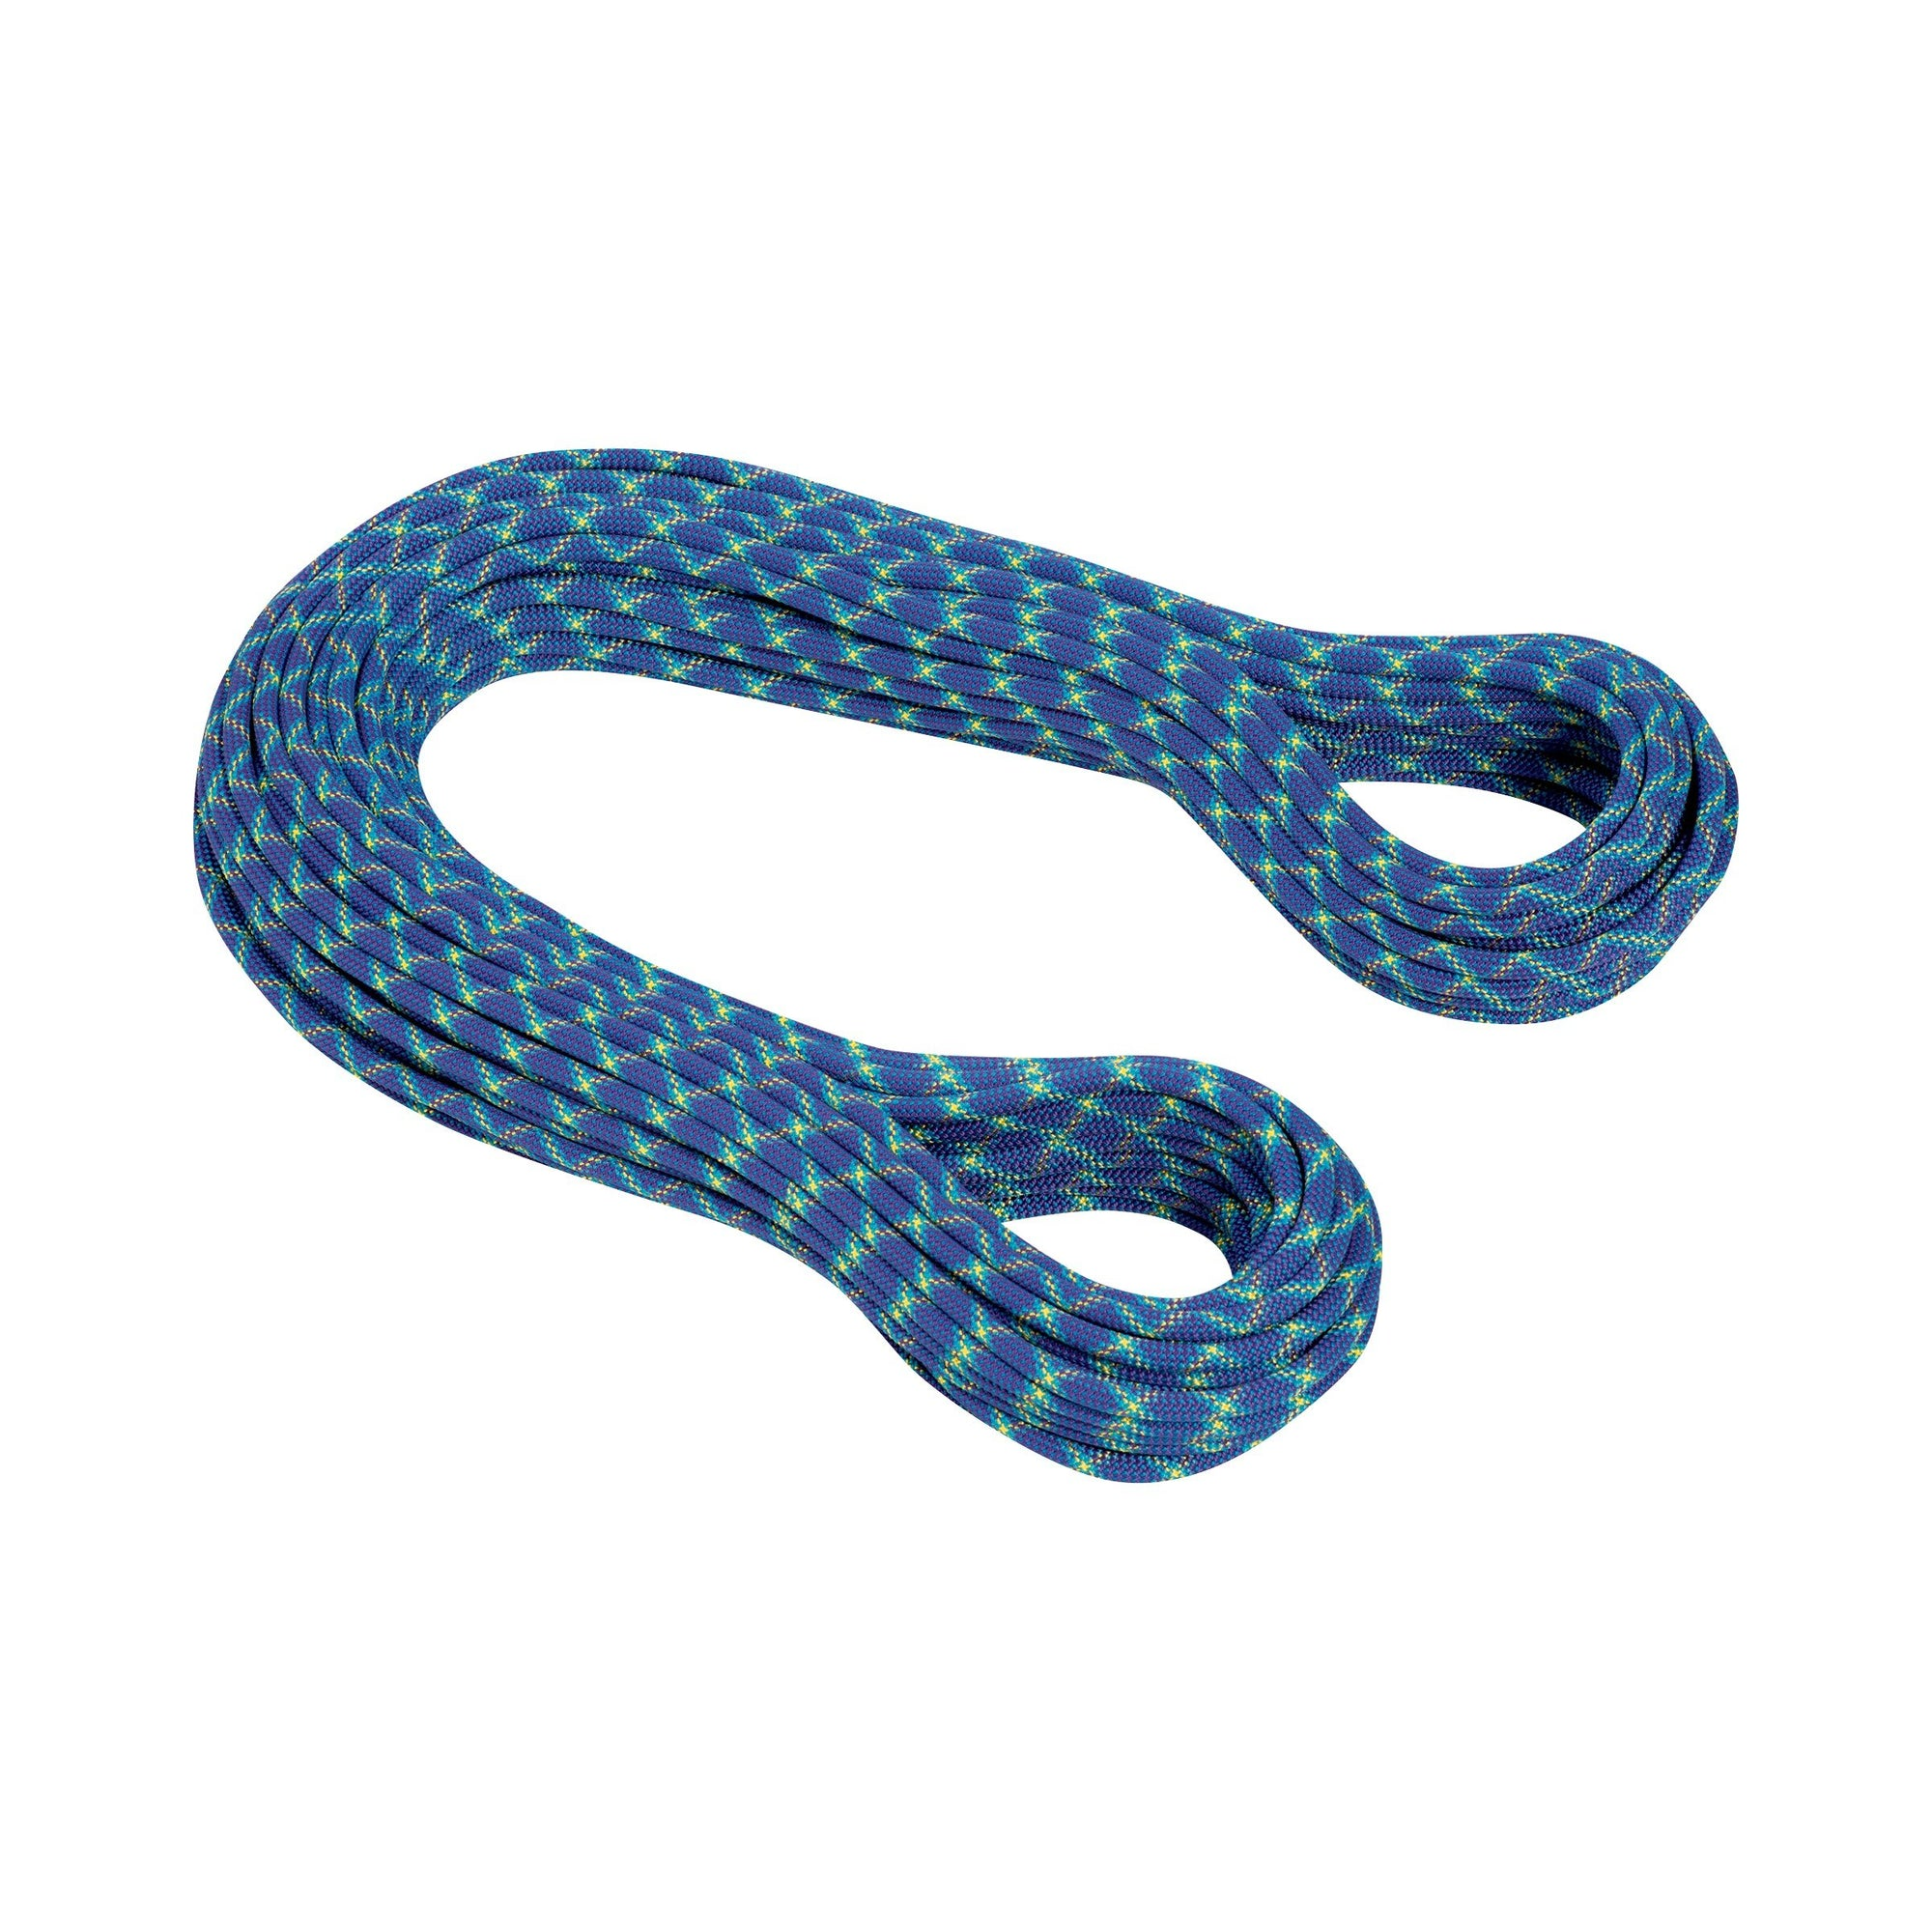 Mammut 8.0 Phoenix 50m PROTECT in Blue